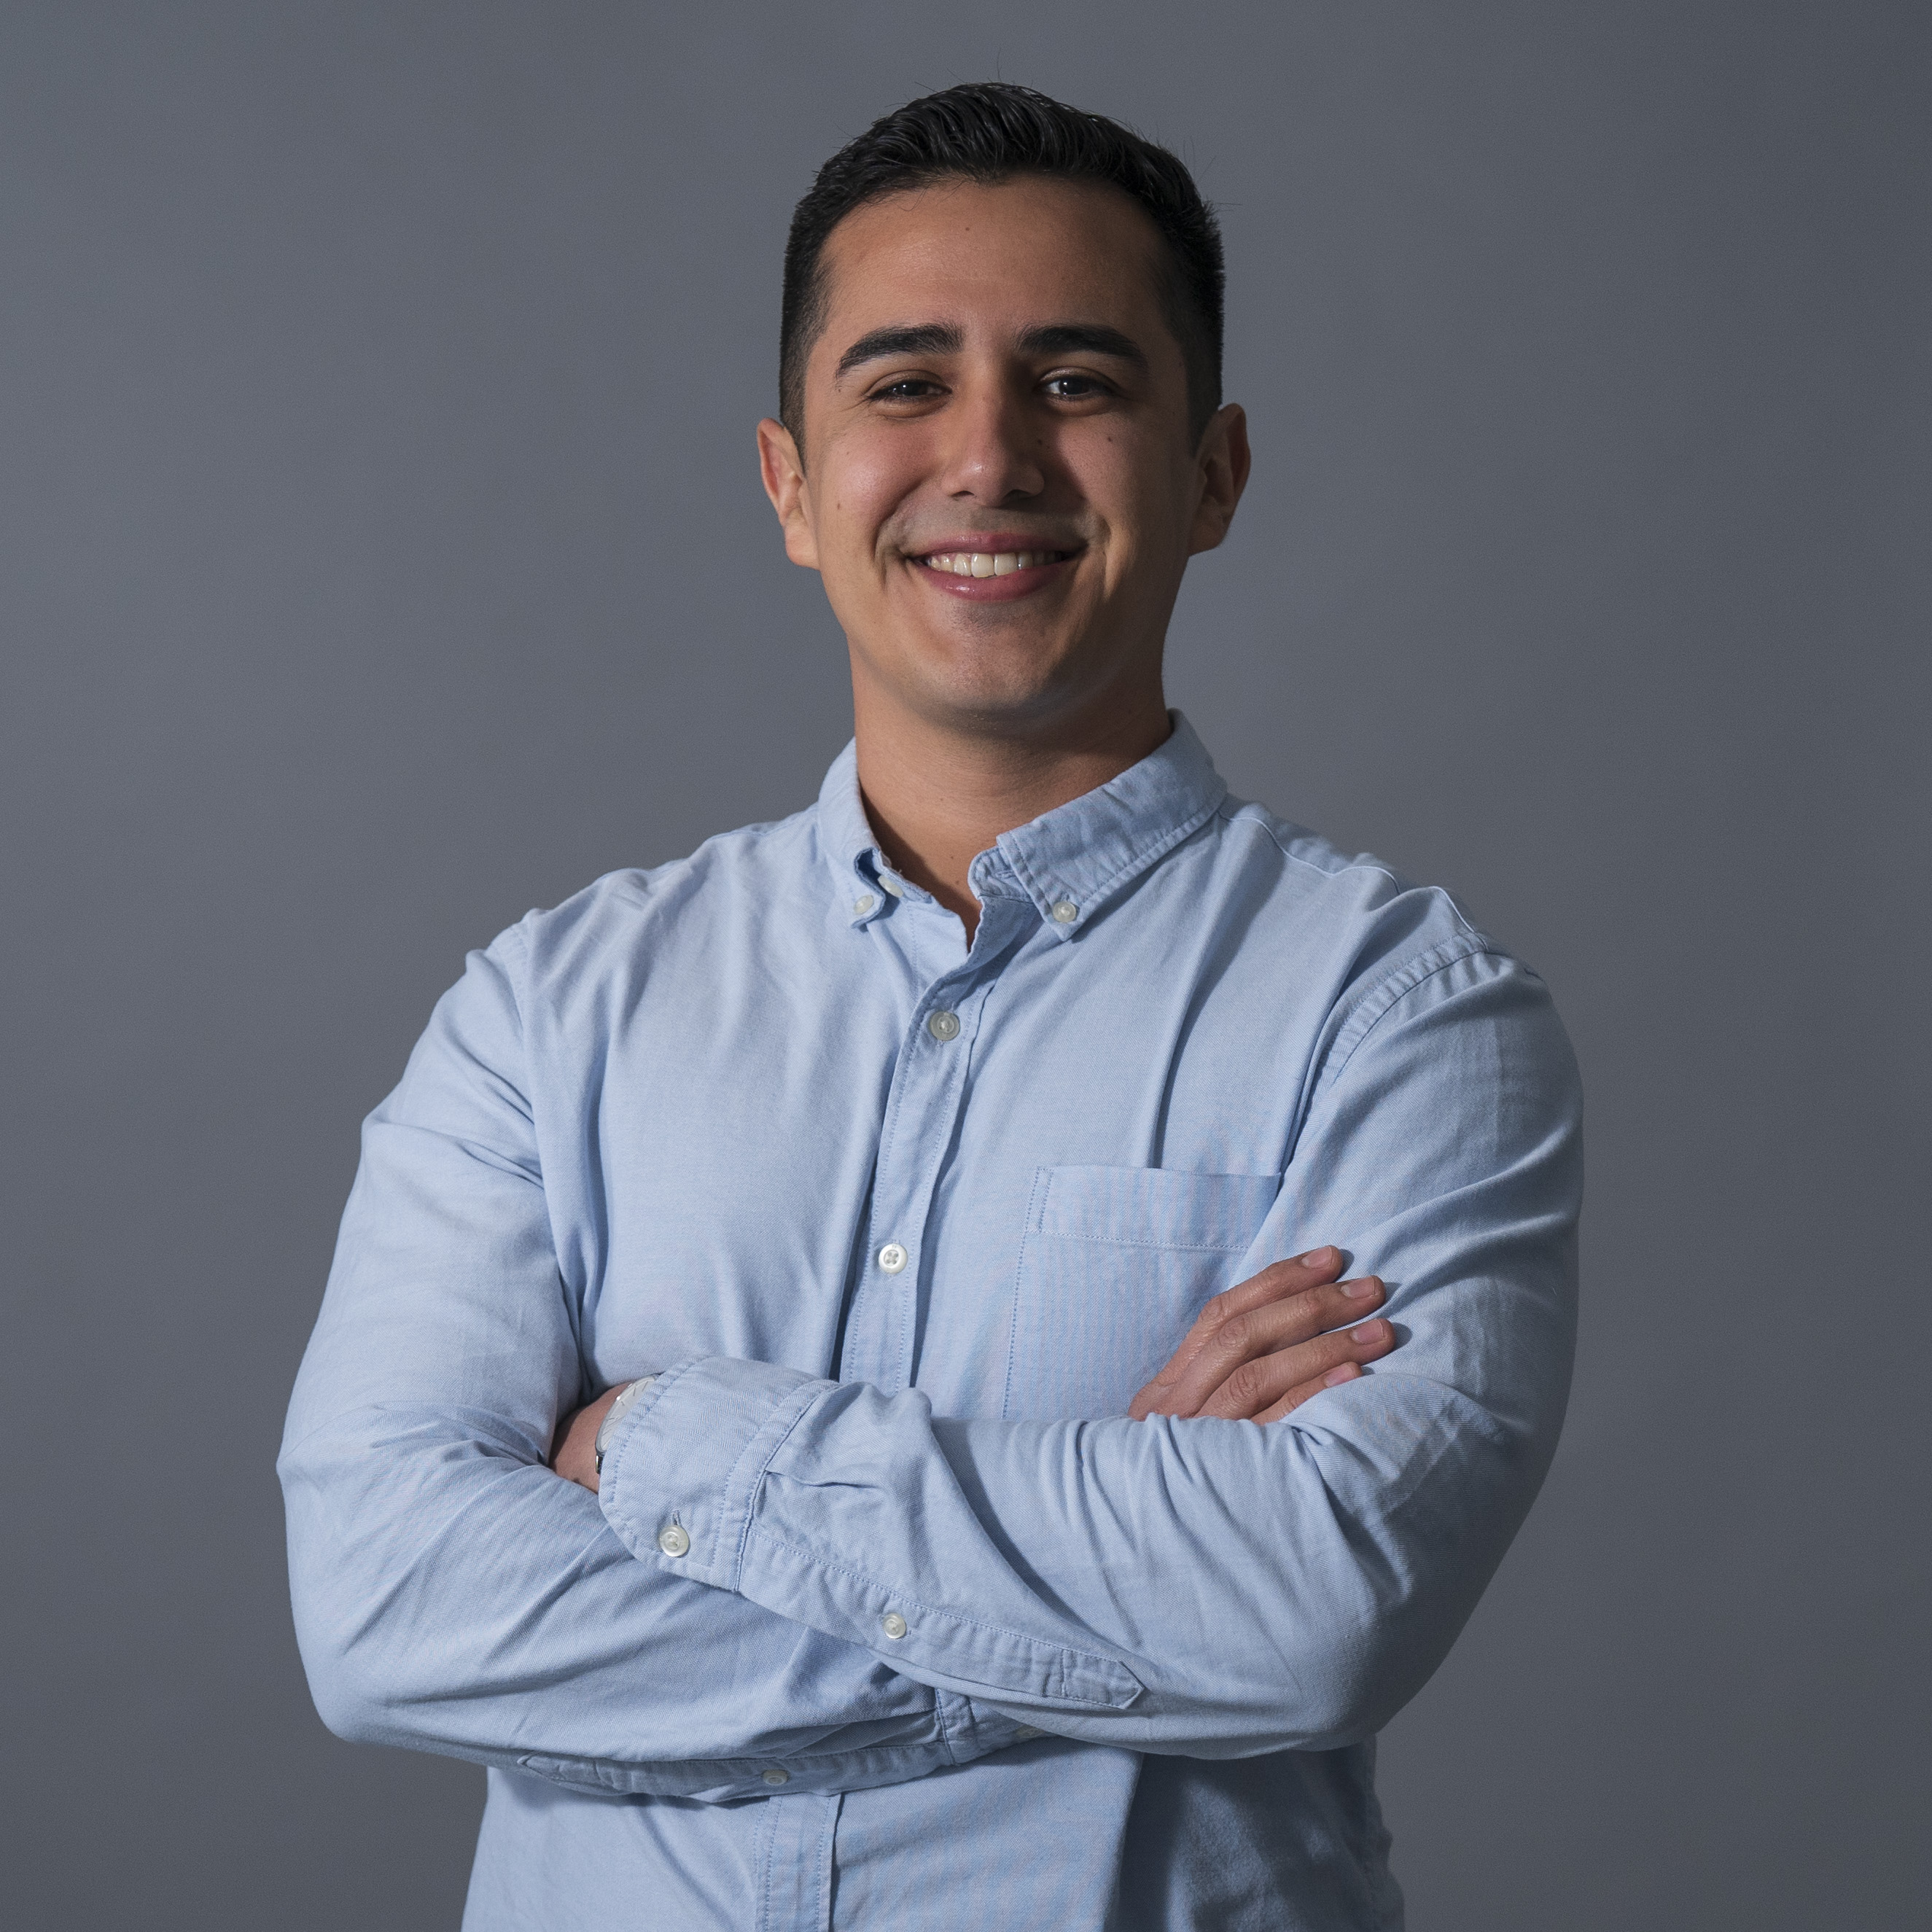 Hispanic young man smiling. Wearing a light blue button up dress shirt. Crossing arms posing for photograph.